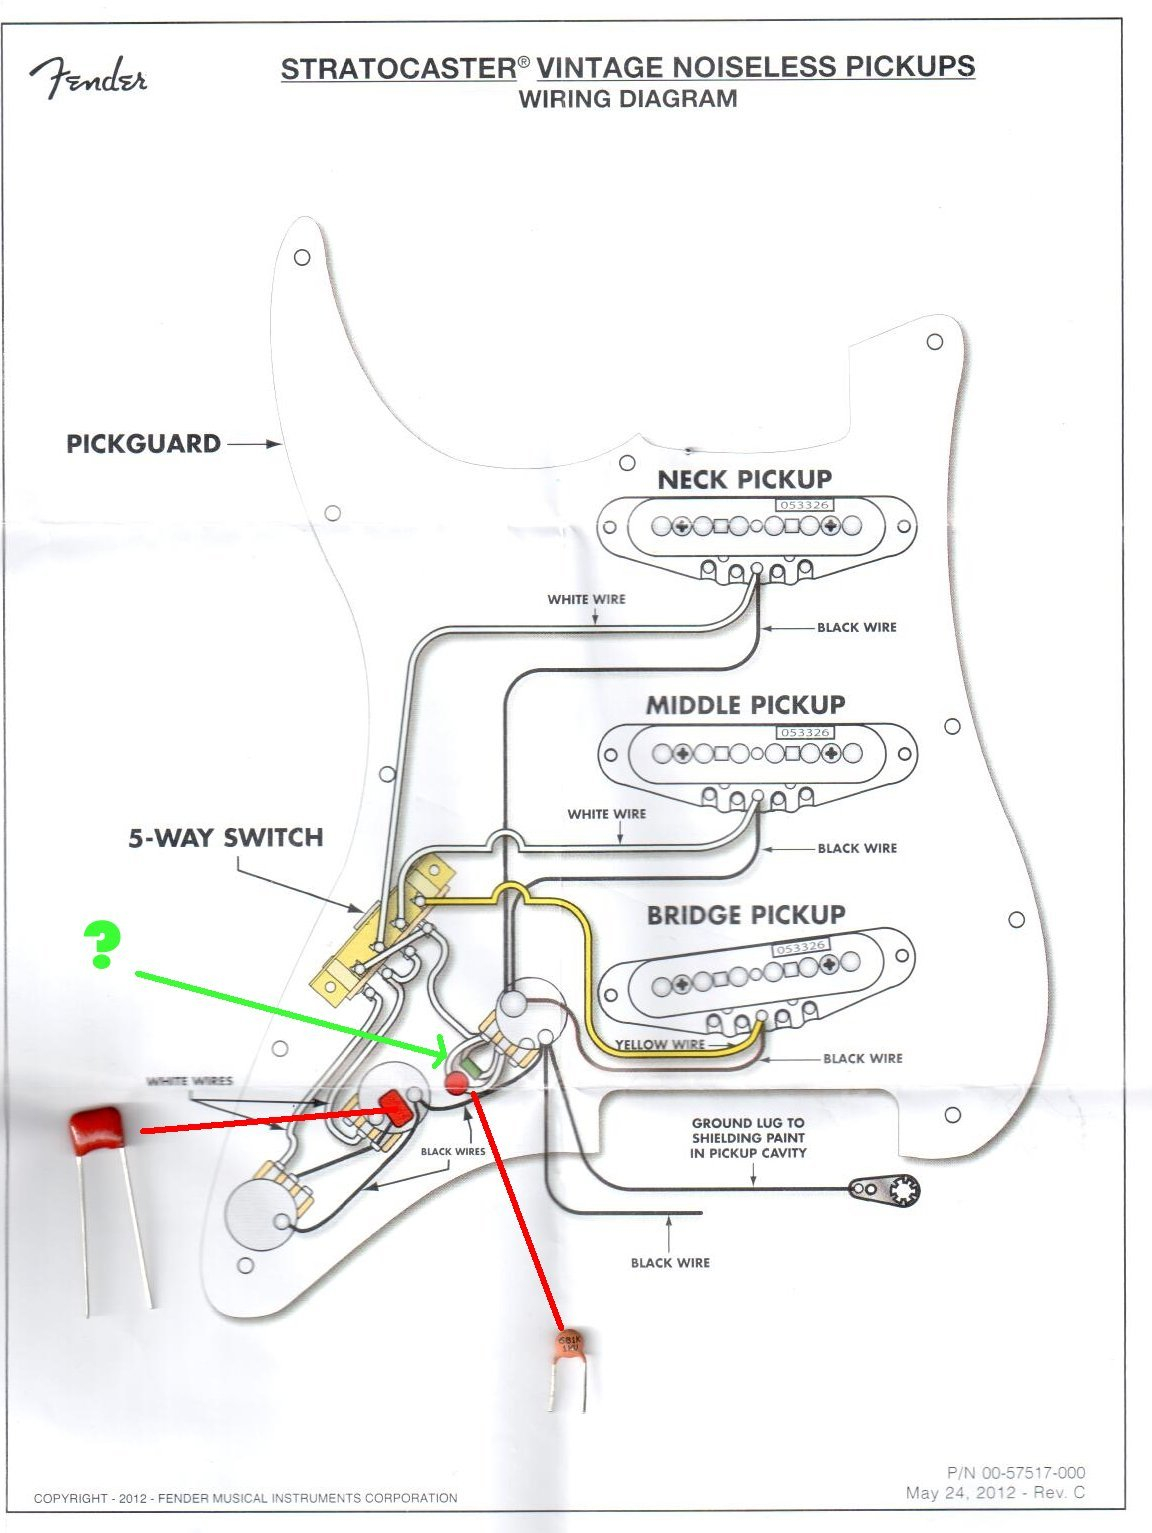 fender n3 wiring diagram 2005 toyota tacoma parts hot noiseless gallery